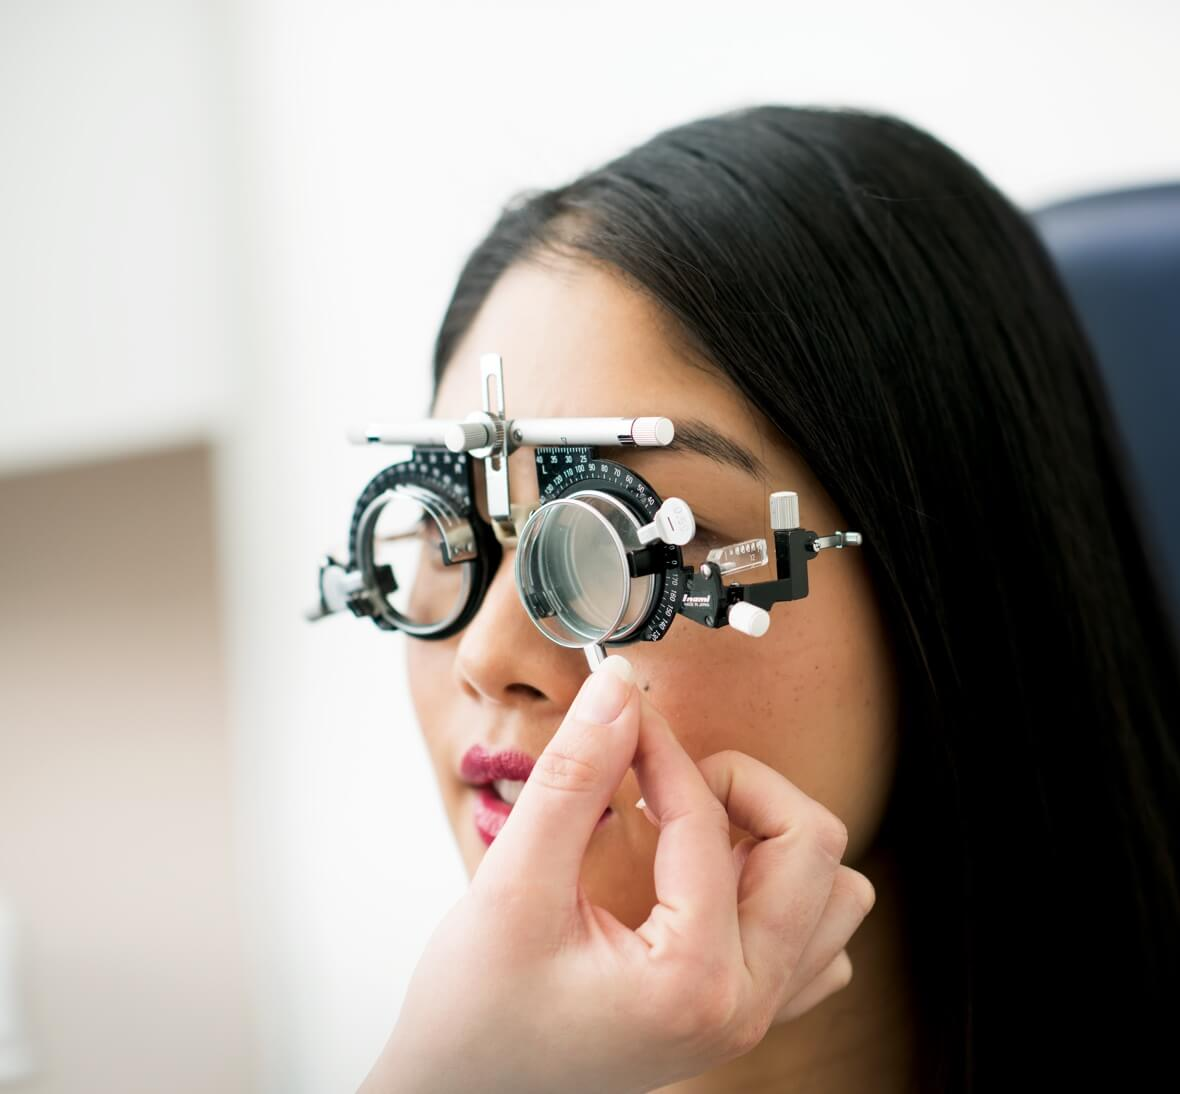 A woman having an eye test